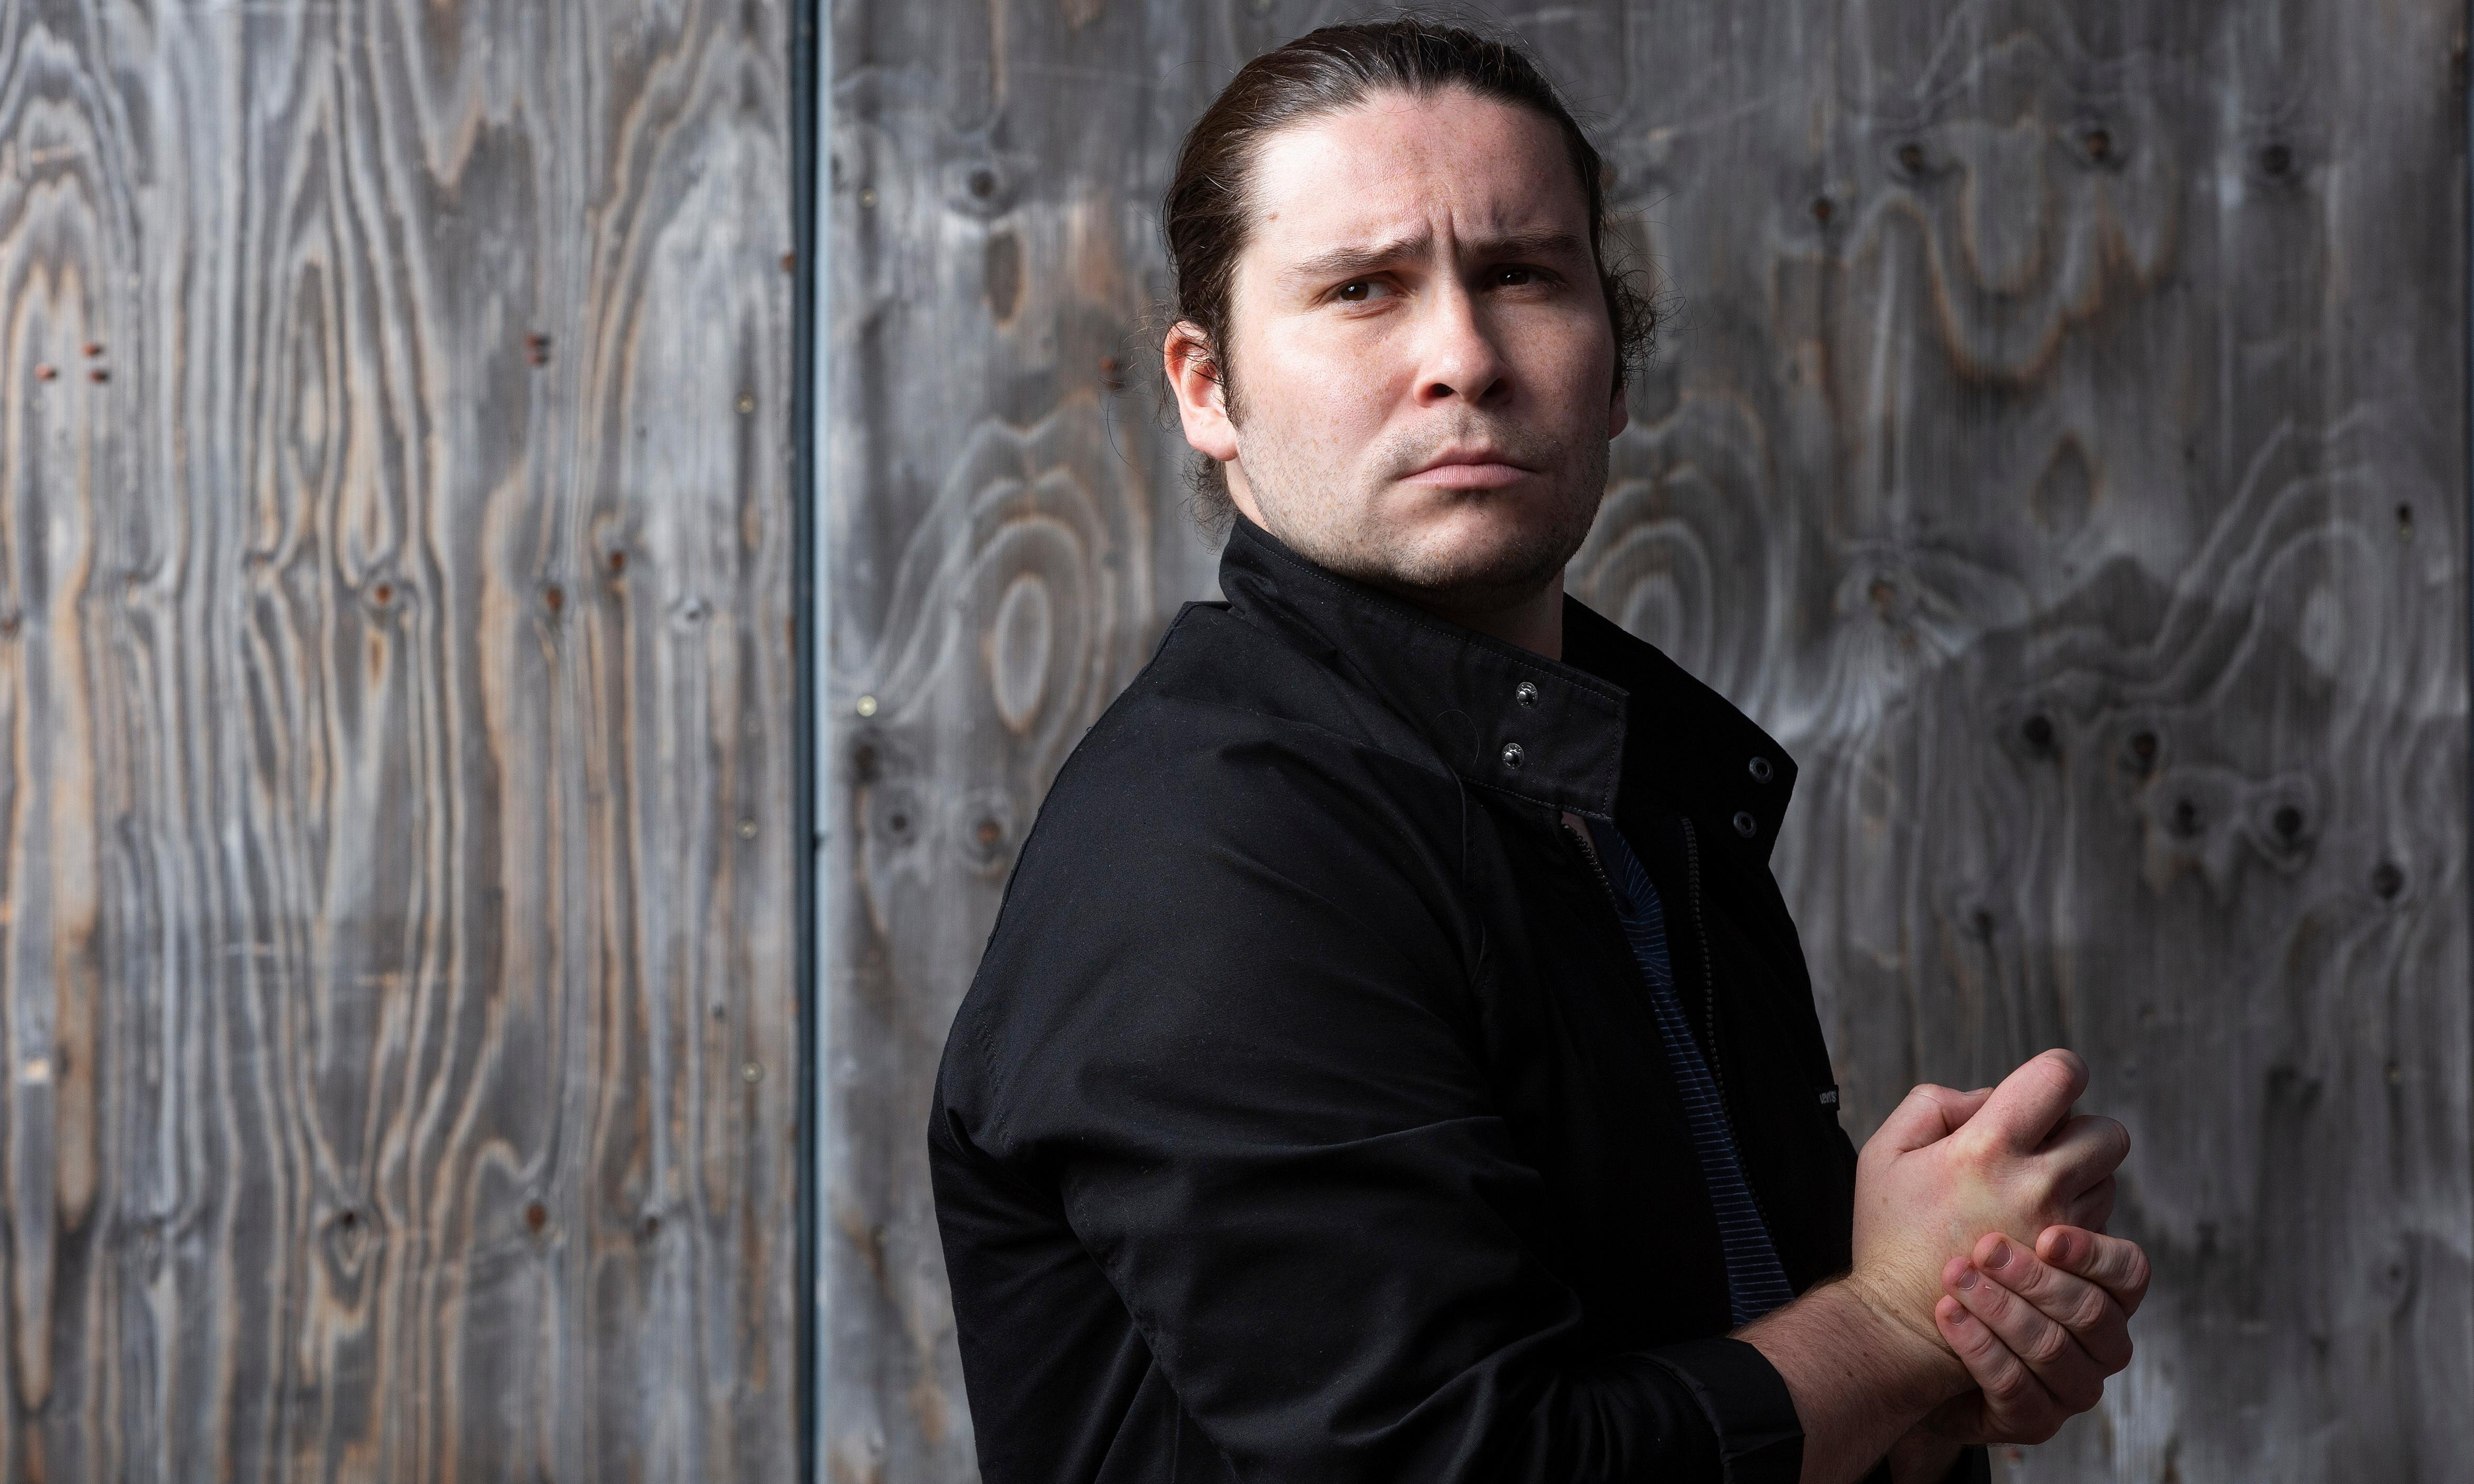 Game of Thrones' Daniel Portman: 'People expect Podrick – that's not what they get'